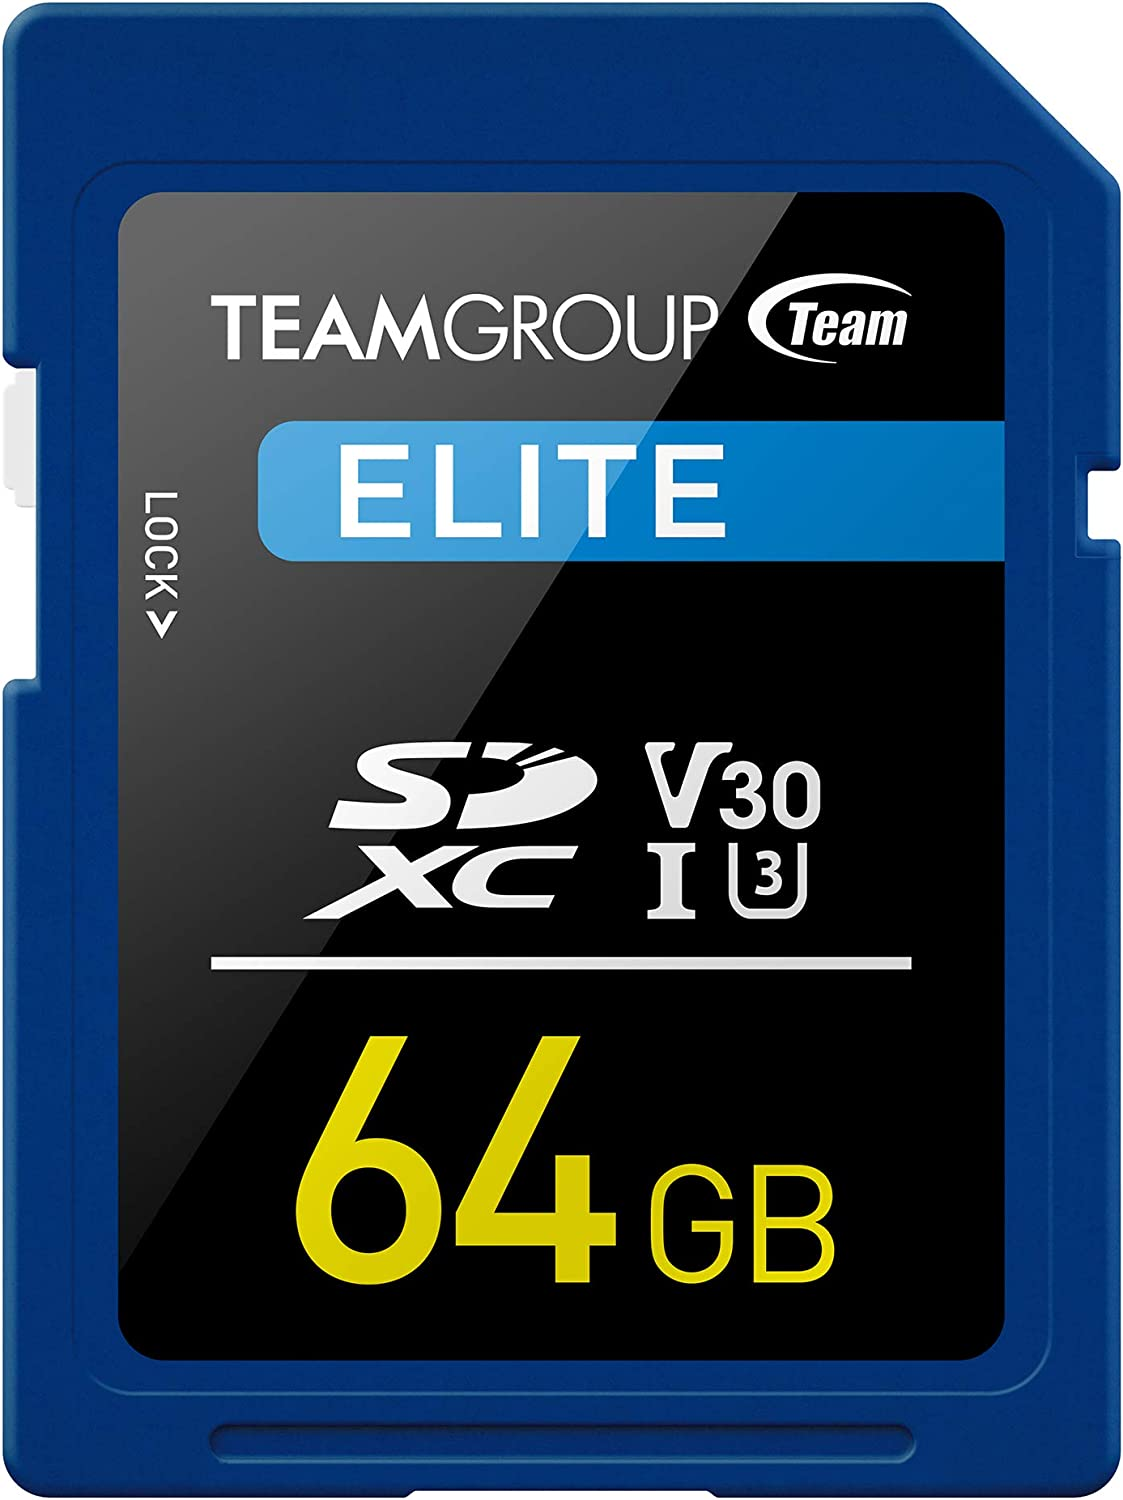 TEAMGROUP Elite 64GB UHS-I/U3 SDXC Memory Card U3 V30 4K UHD Read Speed up to 90MB/s for Professional Vloggers, Filmmakers, Photographers & Content Curators TESDXC64GIV3001